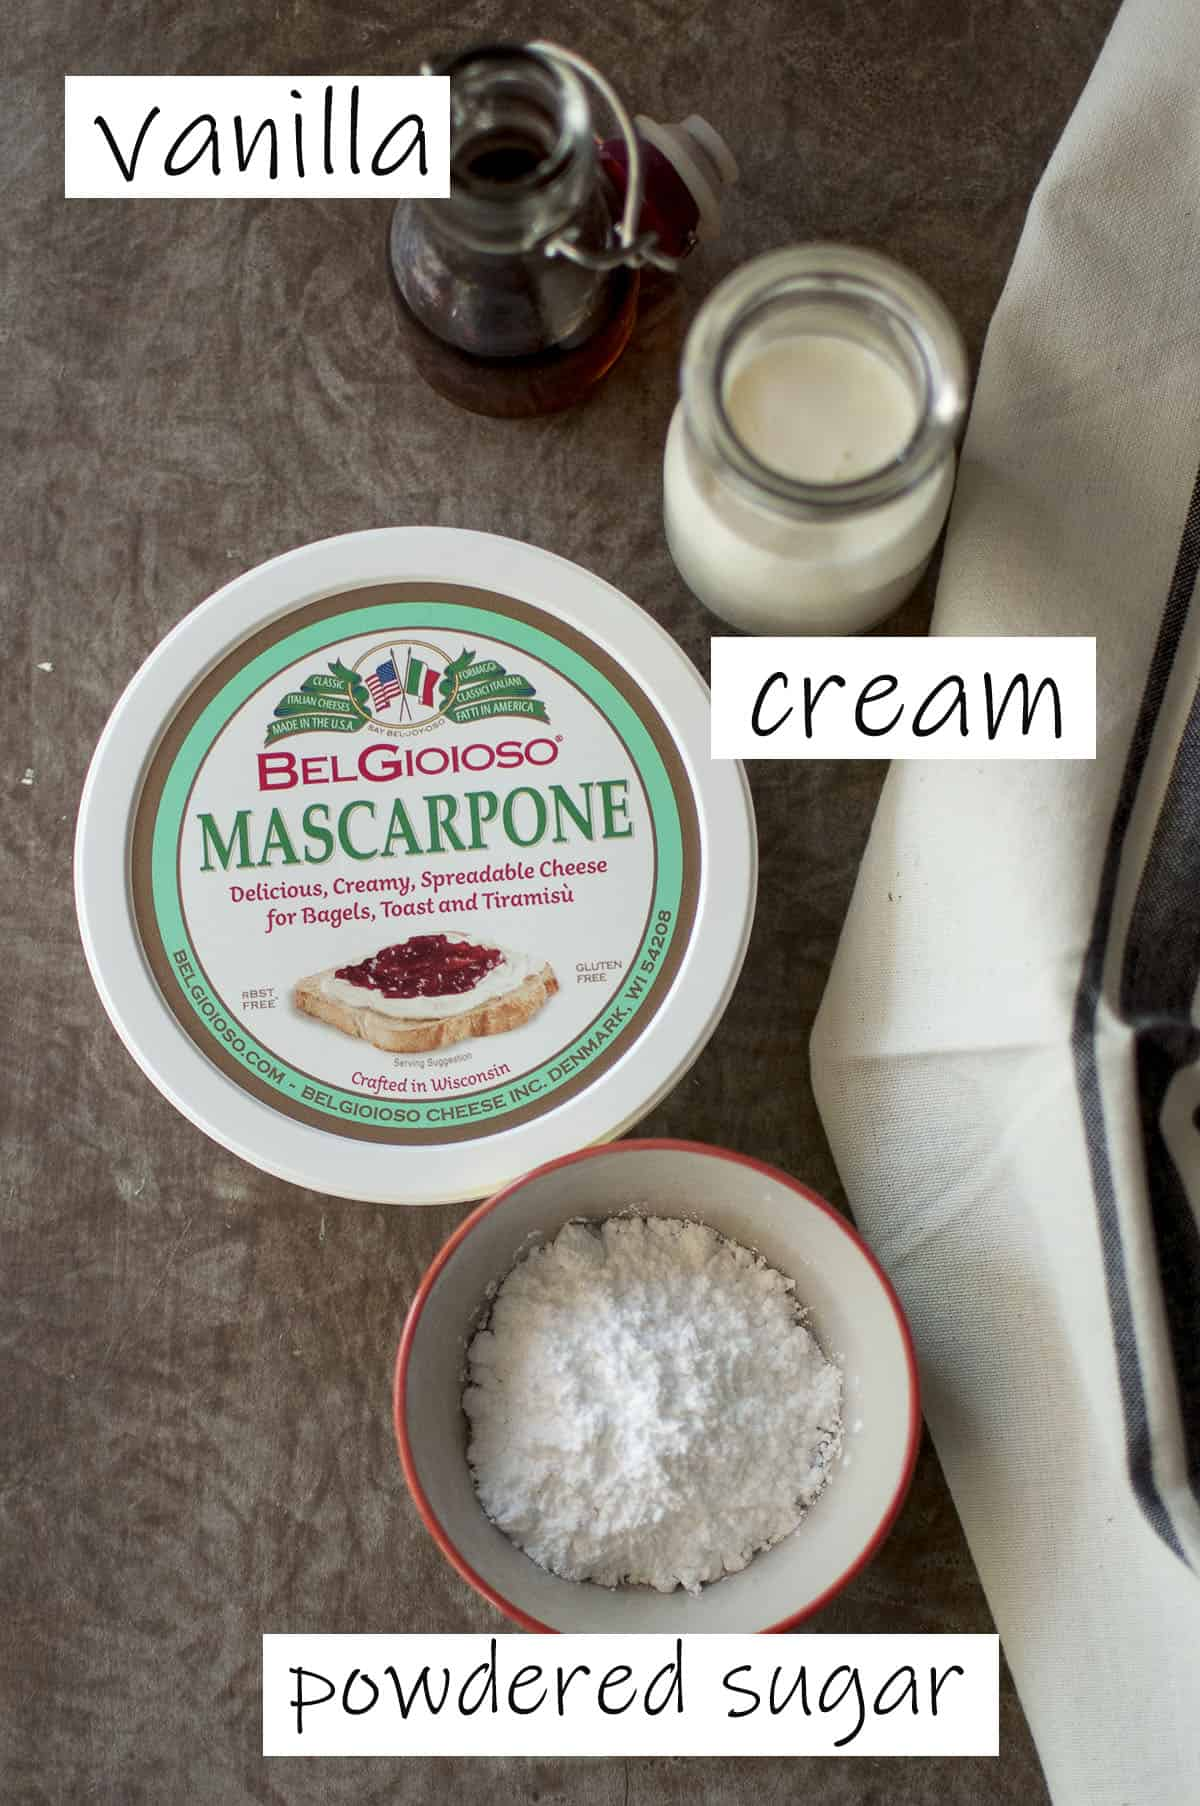 Ingredients for the cream filling